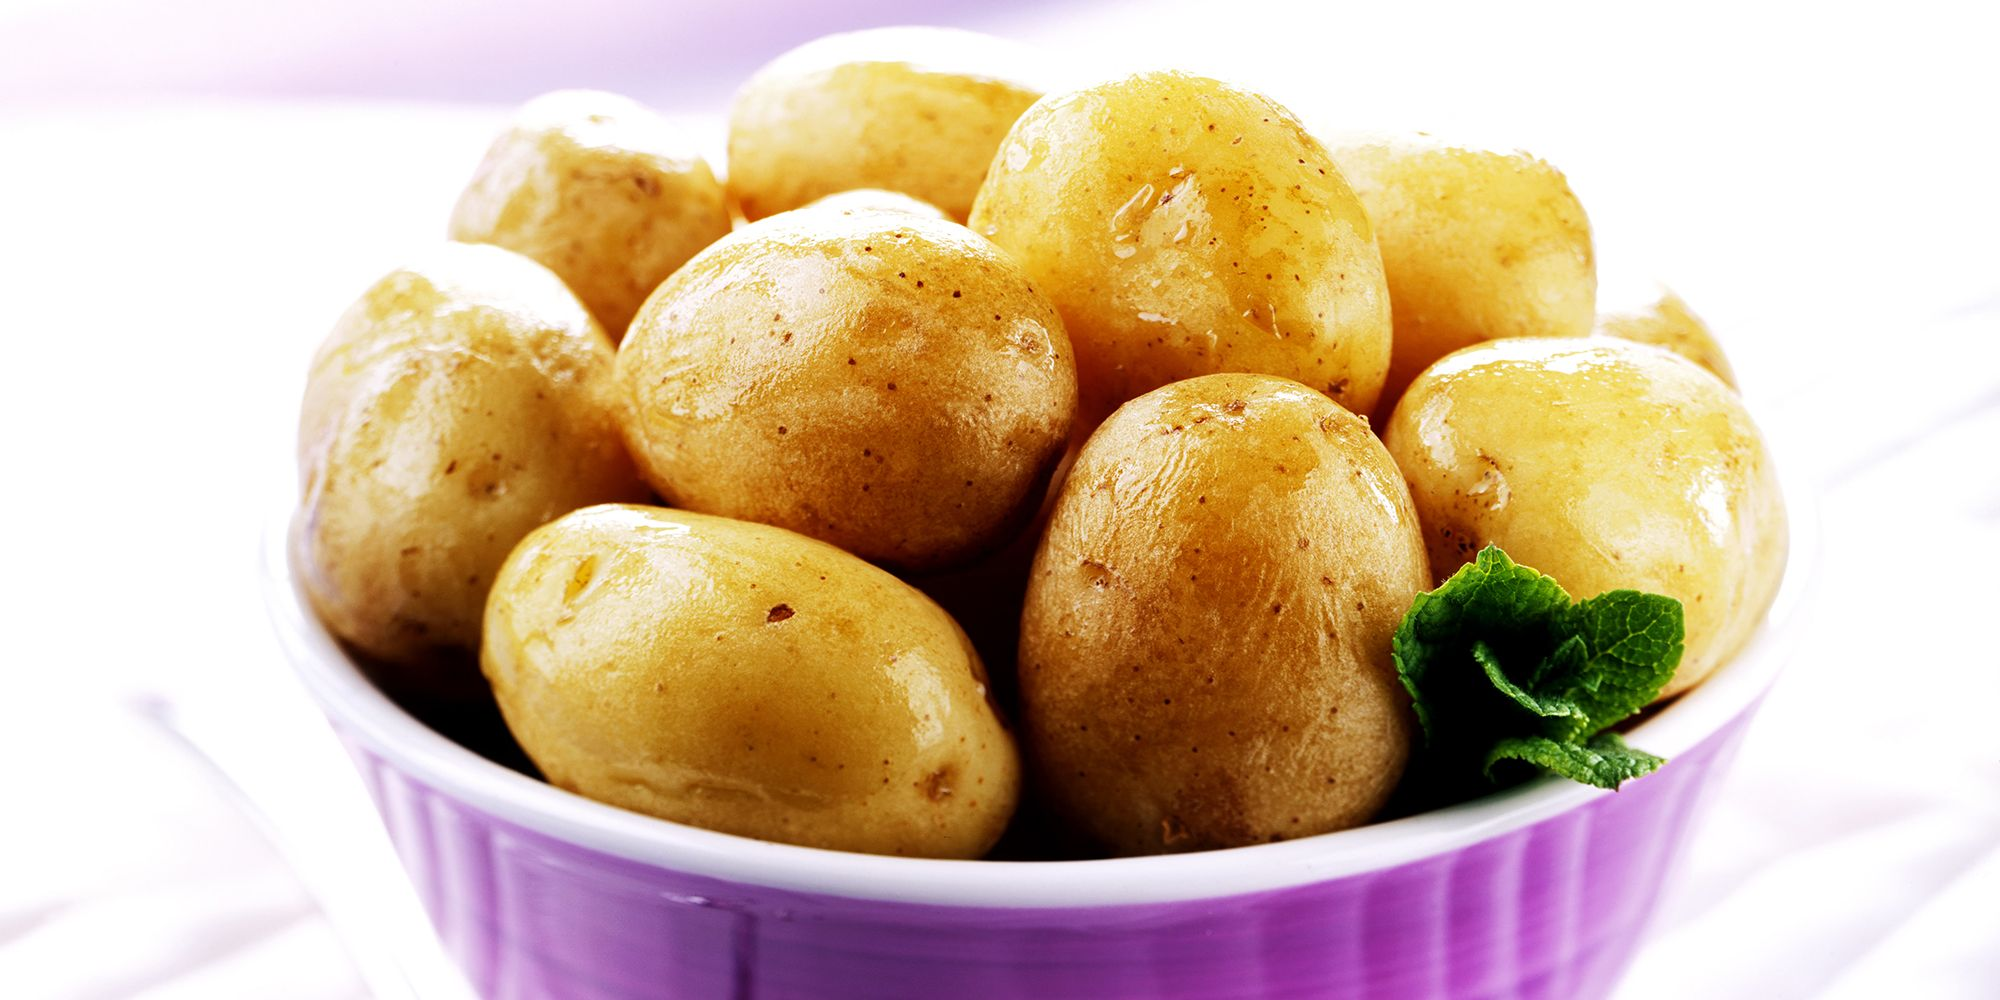 Can Dogs Eat Potatoes? - Are Potatoes Good or Bad for Dogs